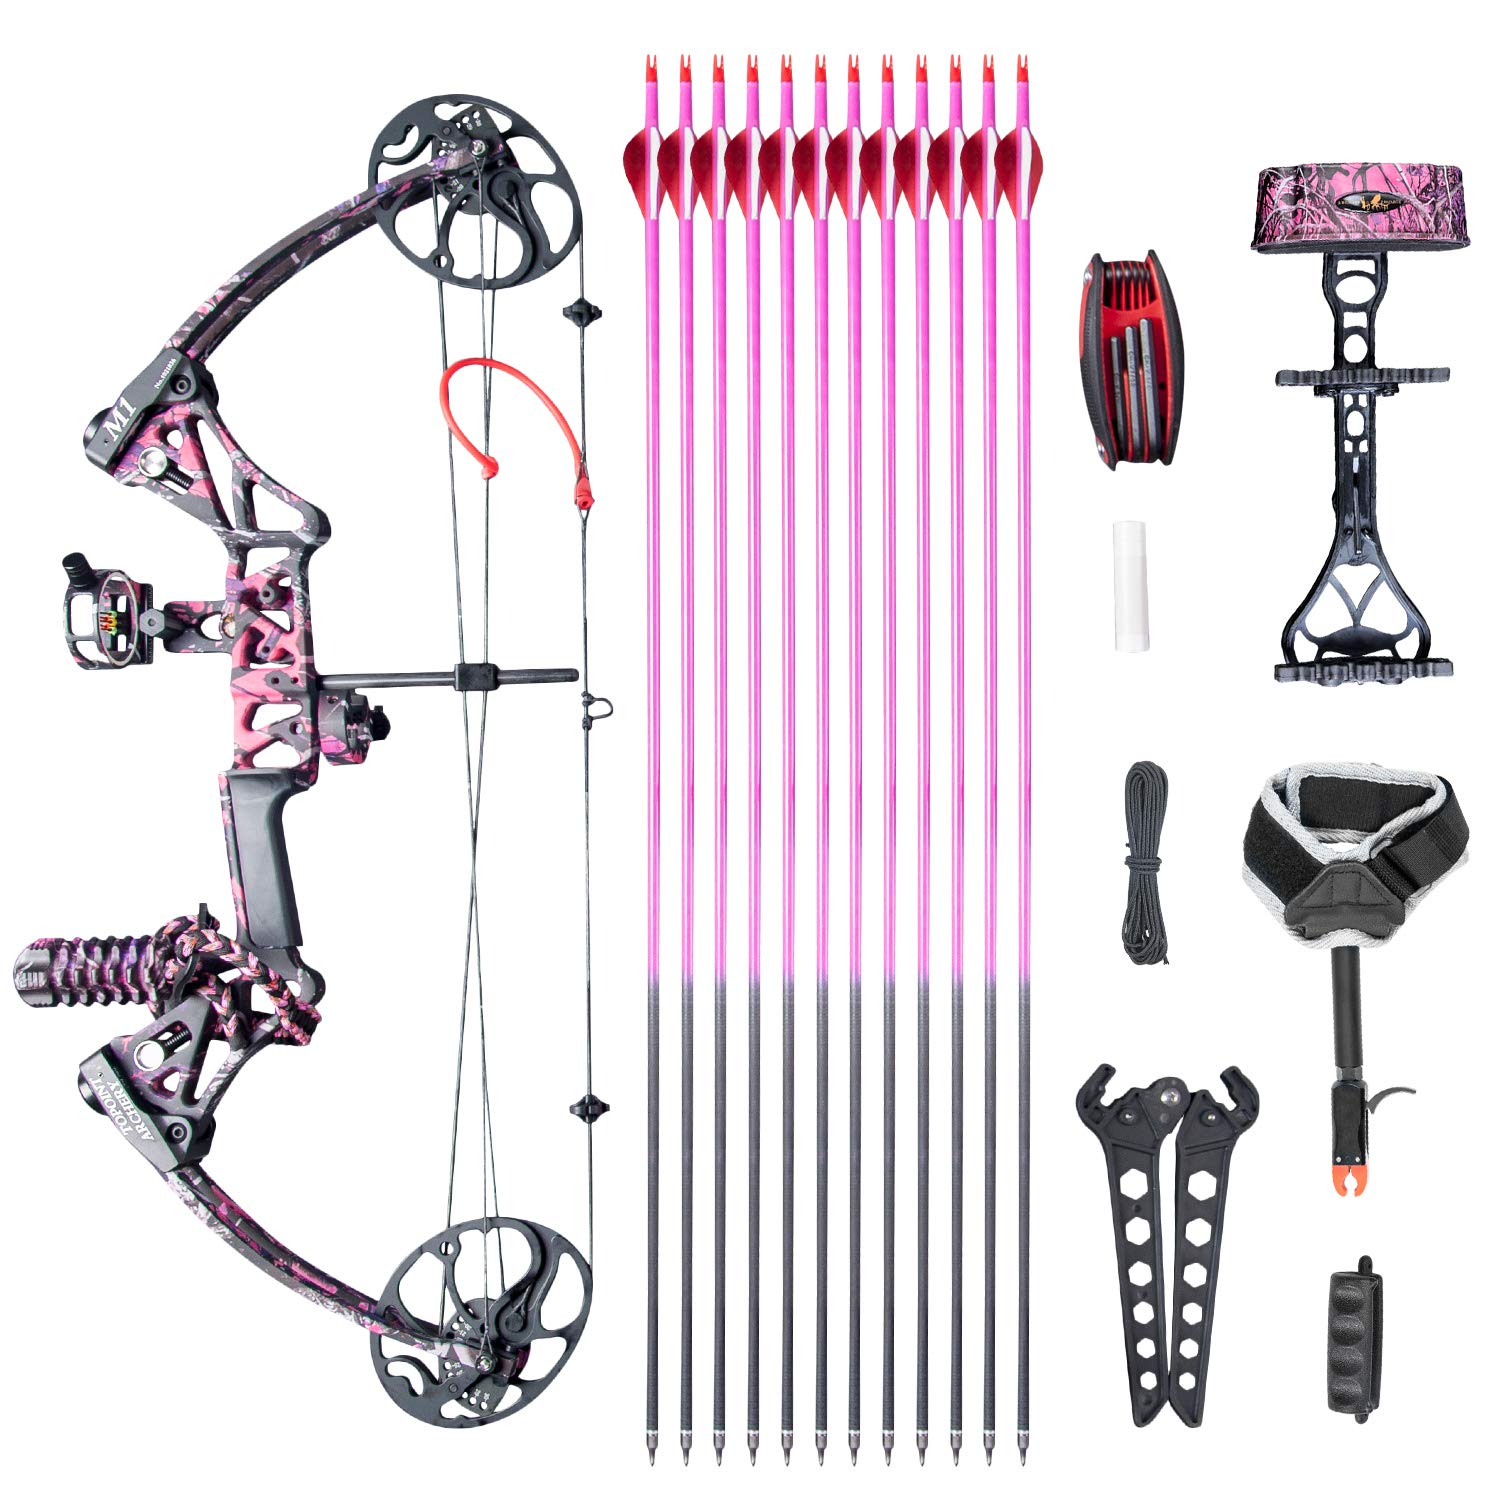 """Compound Bow Ship from USA Warehouse,Topoint Archery for Women, Package M1,19""""-30"""" Draw Length,10-50Lbs Draw Weight,Hunting Bow for Girls,Muddygirl Color (Muddygirl)"""